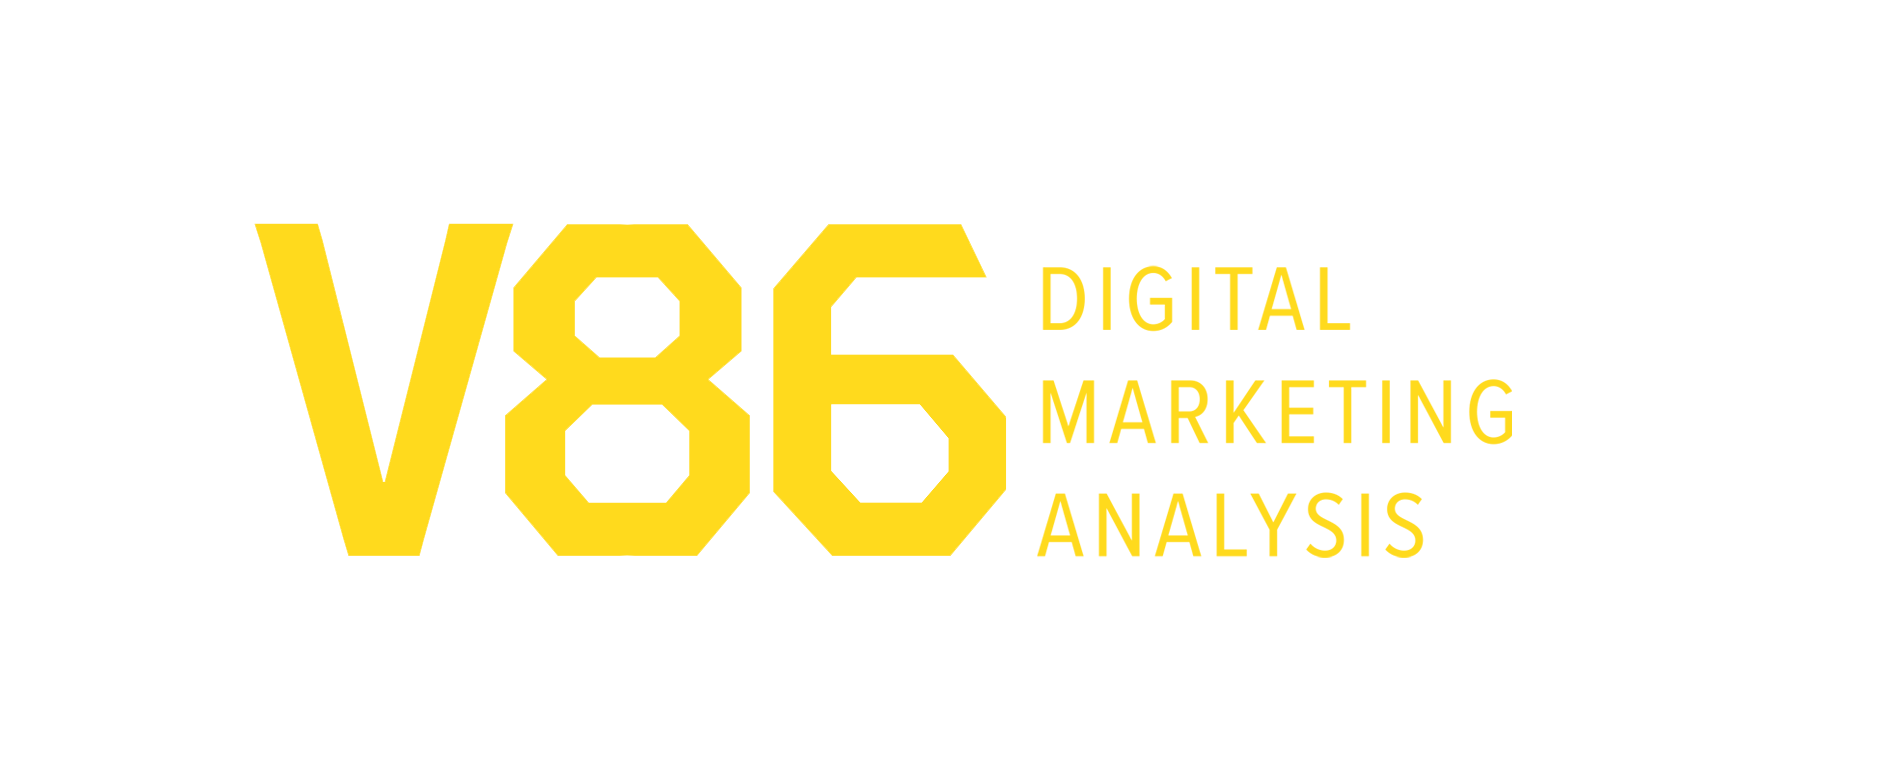 V86-boxed-yellow-digital-logo.png